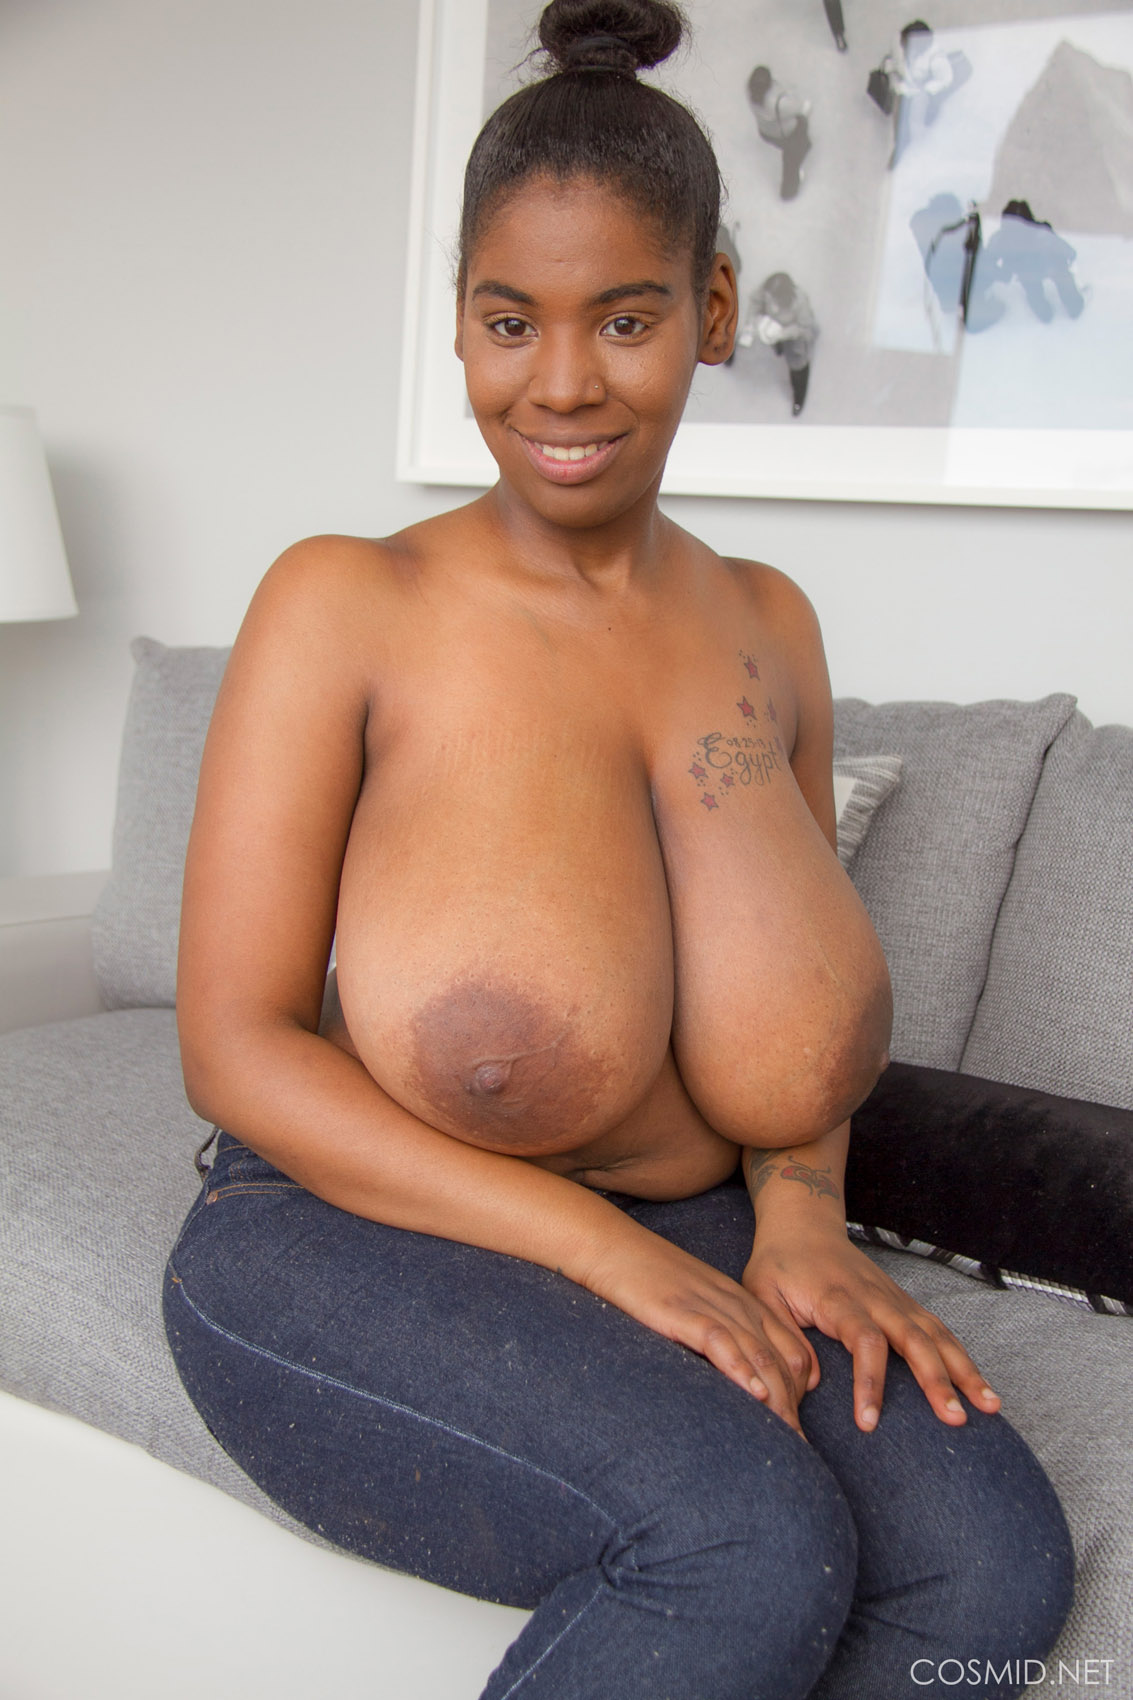 Big boobs black girl exclusively